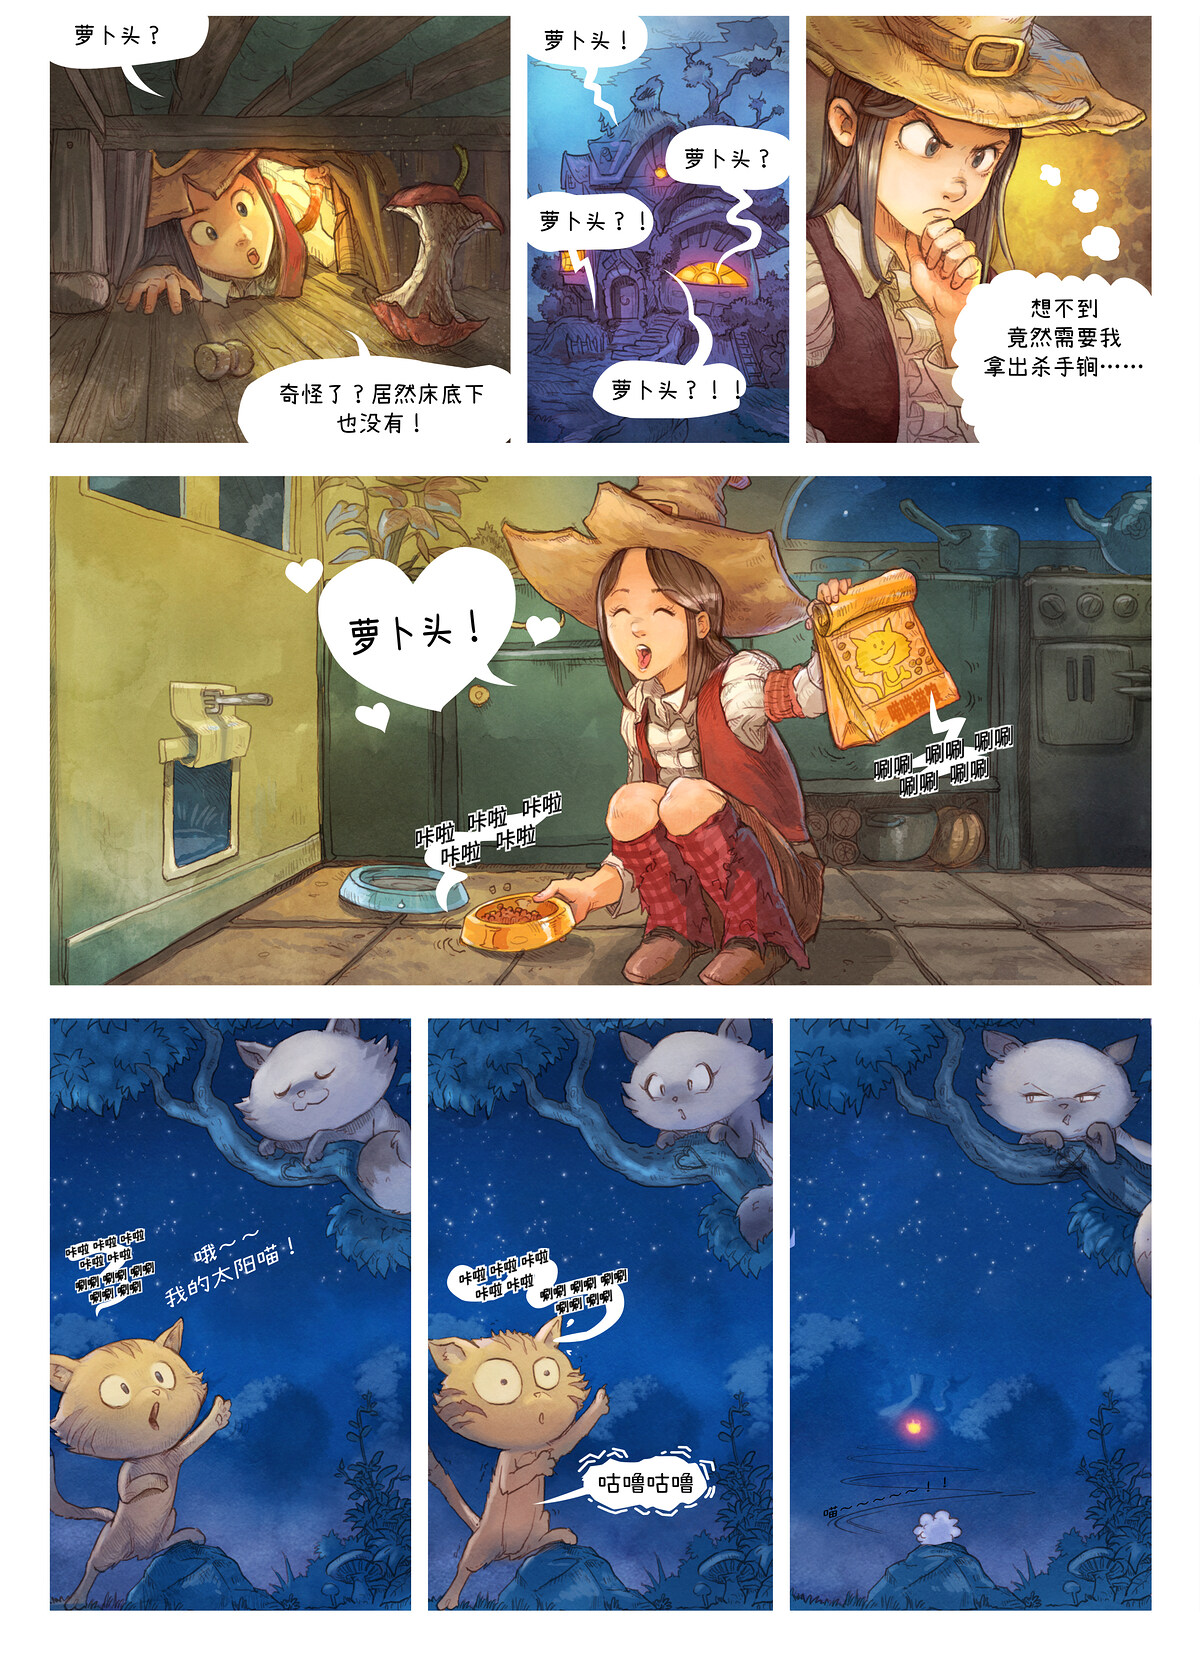 A webcomic page of Pepper&Carrot, 漫画全集 4 [cn], 页面 2